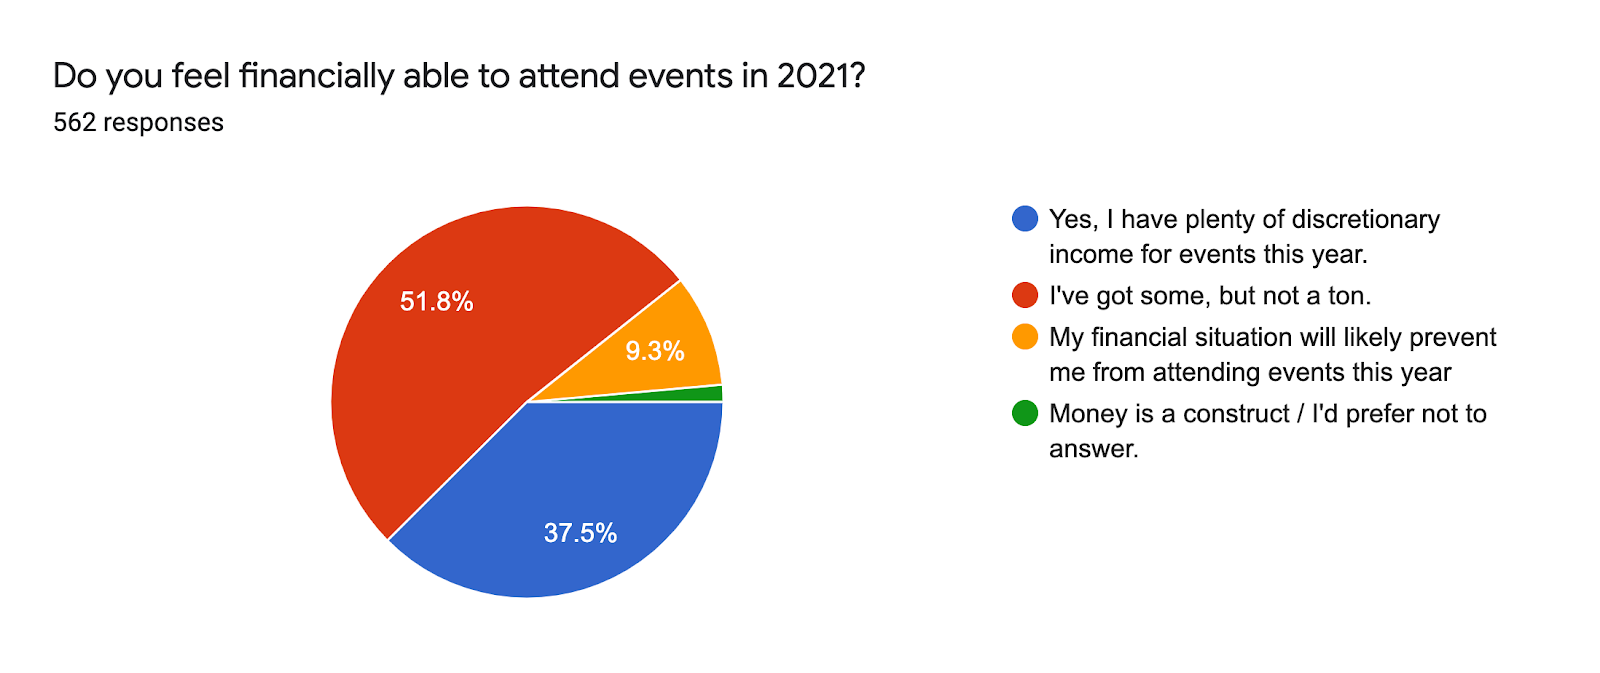 Forms response chart. Question title: Do you feel financially able to attend events in 2021?. Number of responses: 562 responses.